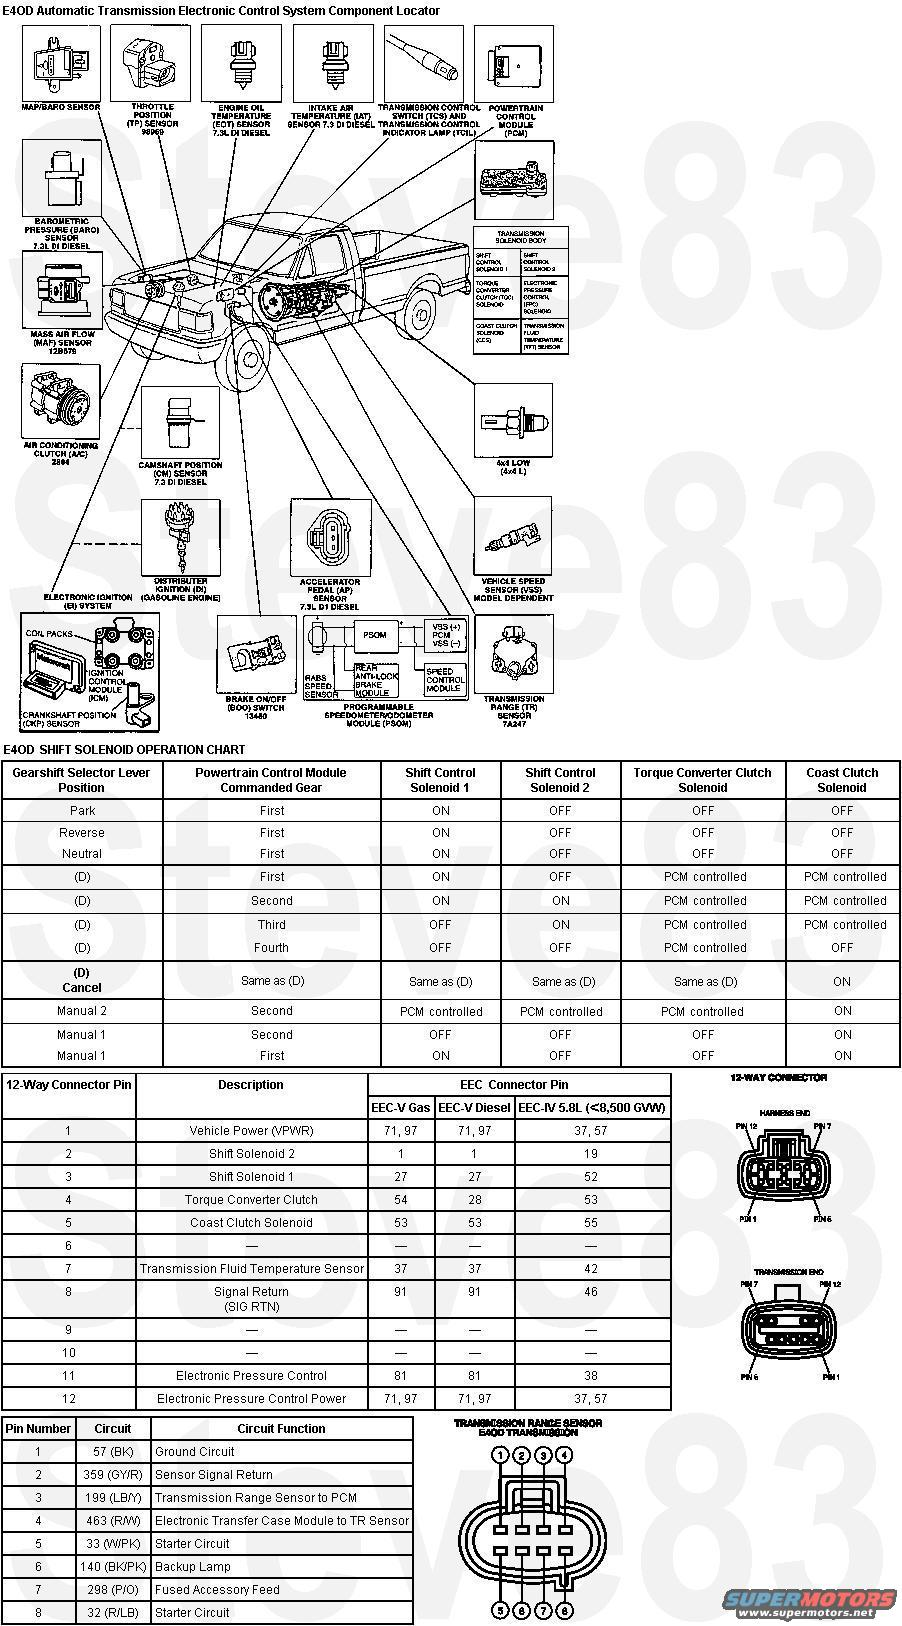 e4od transmission diagram  e4od  free engine image for